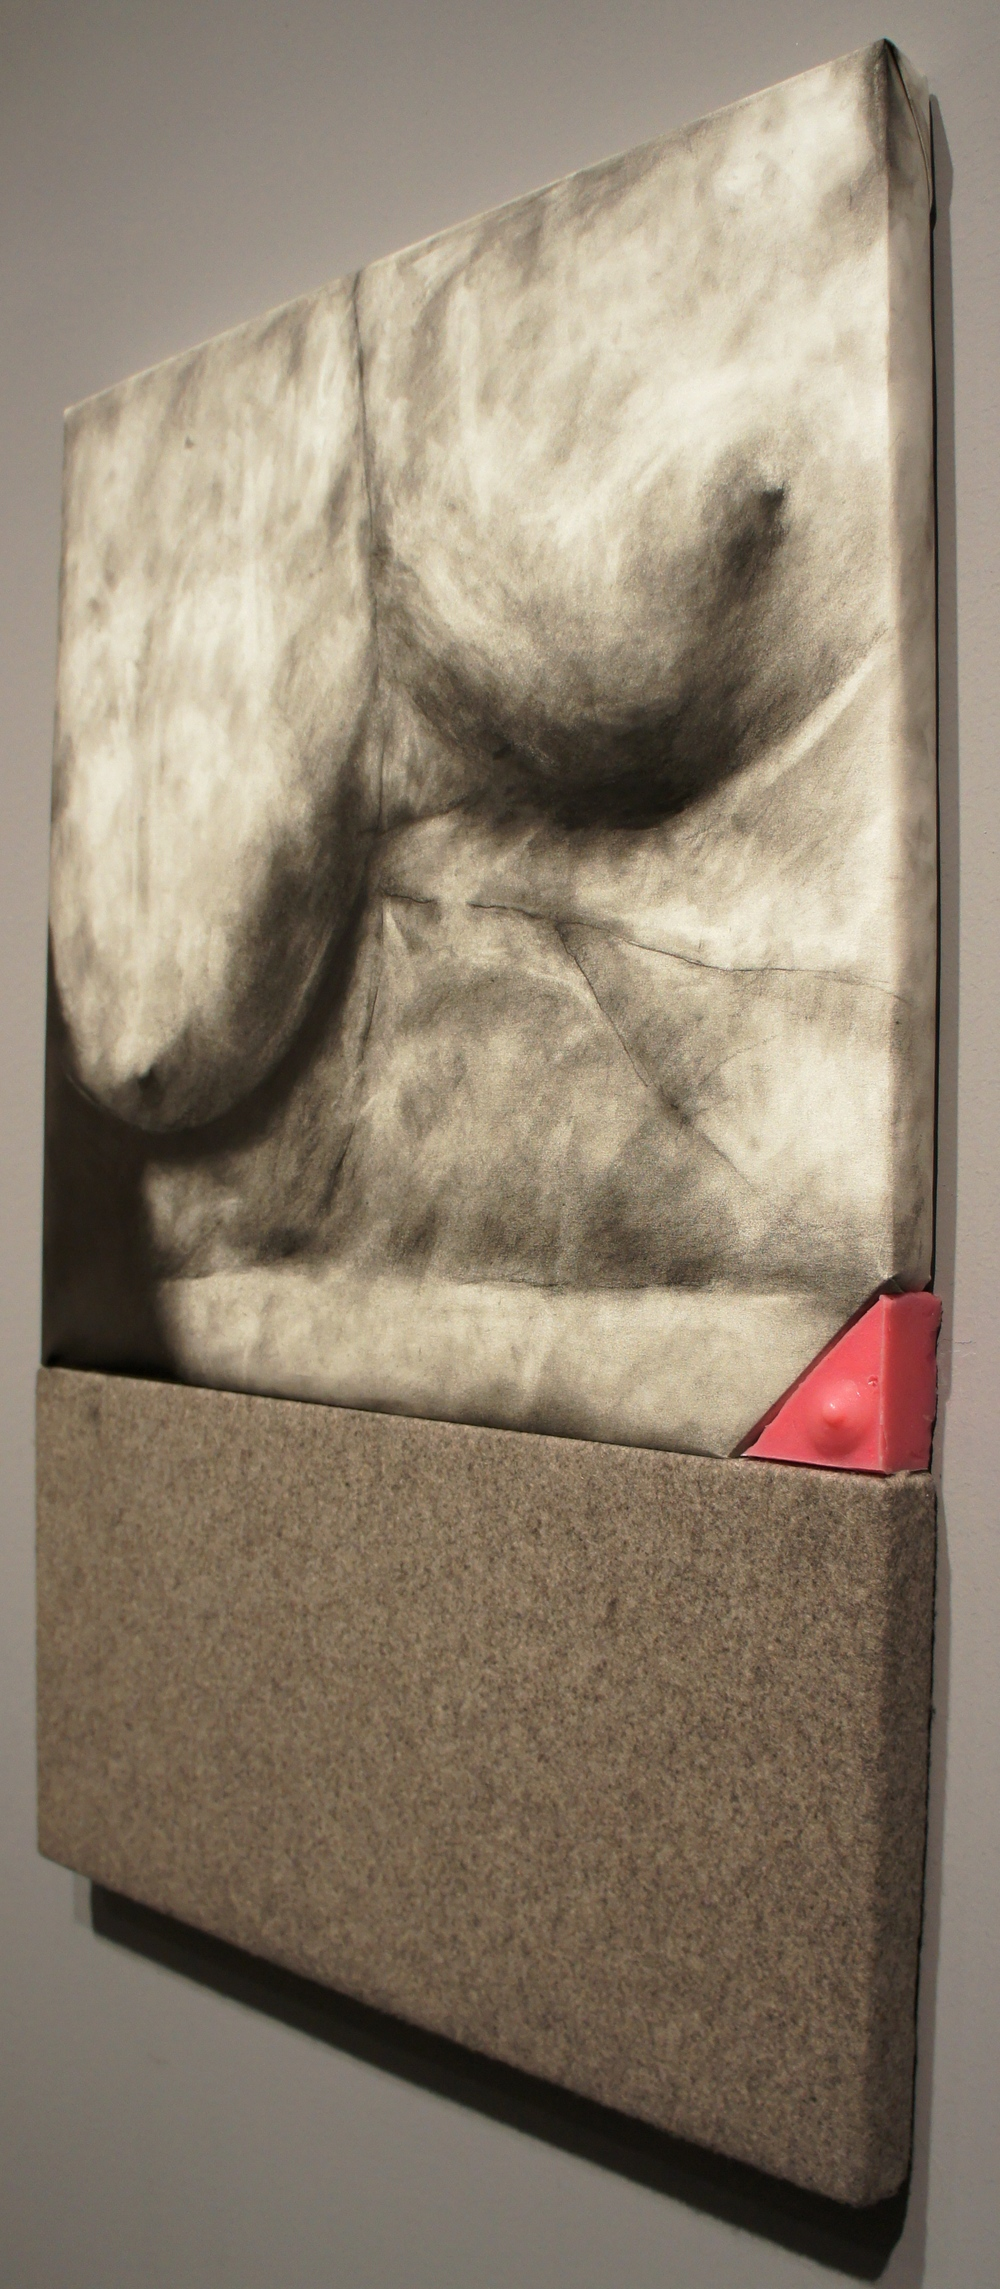 Understudy  , 2014. Graphite on paper, felt, silicone, Pepto-Bismol. 45 in. x 30 in x 2 in.